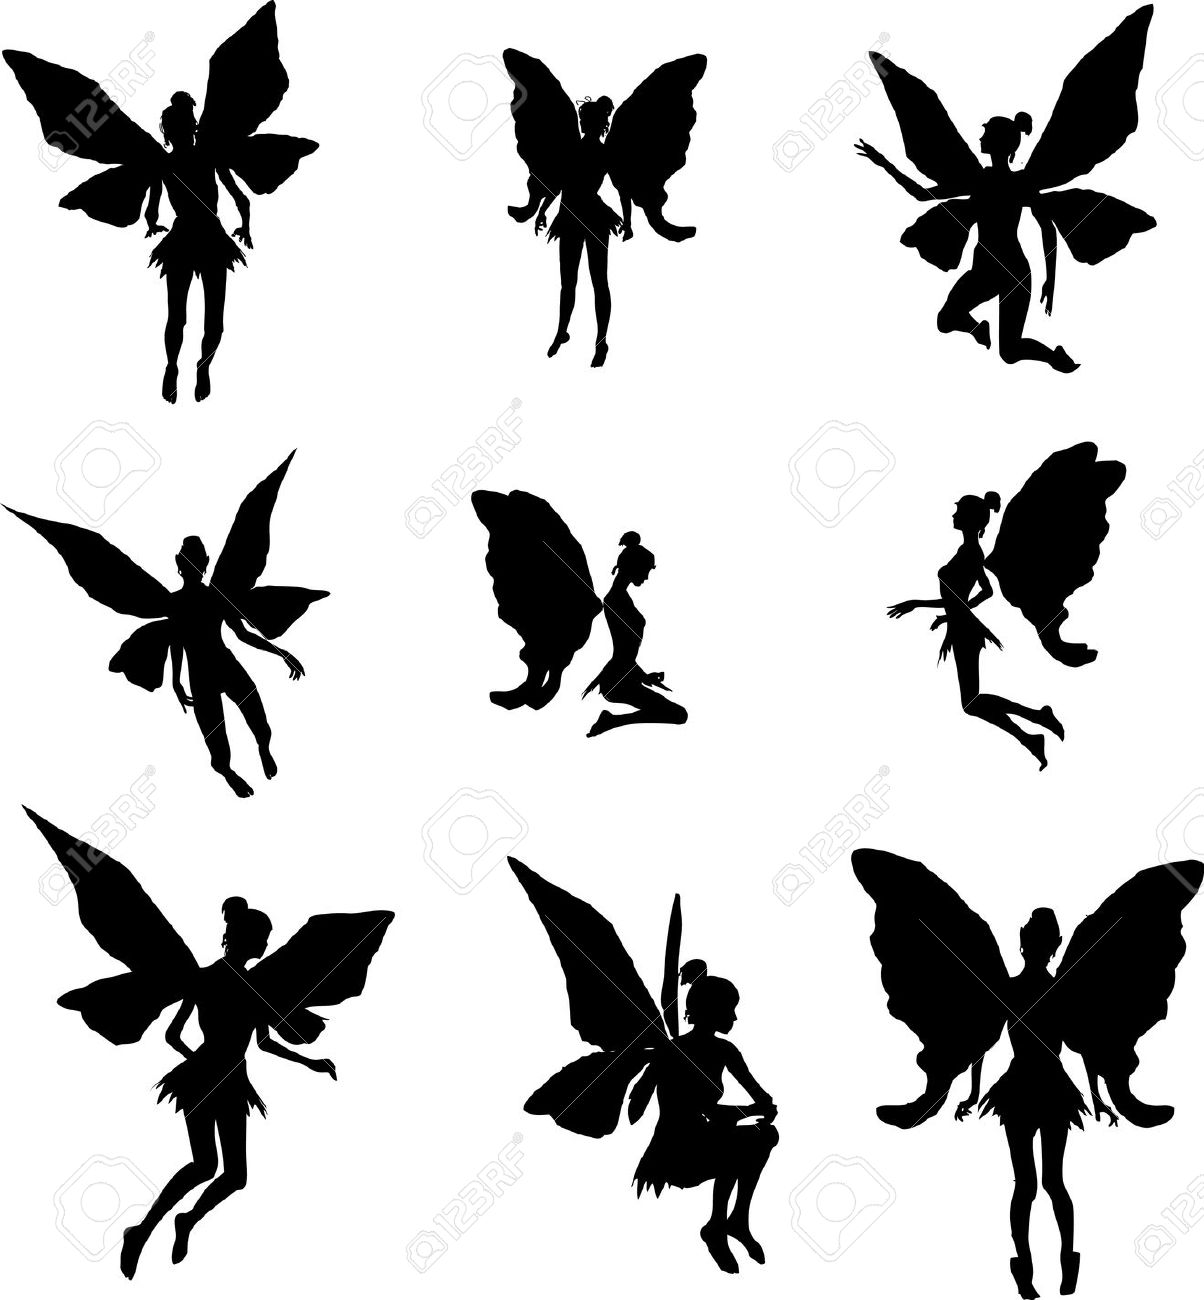 Elfen clipart flying Clip baby Fairy clip Google